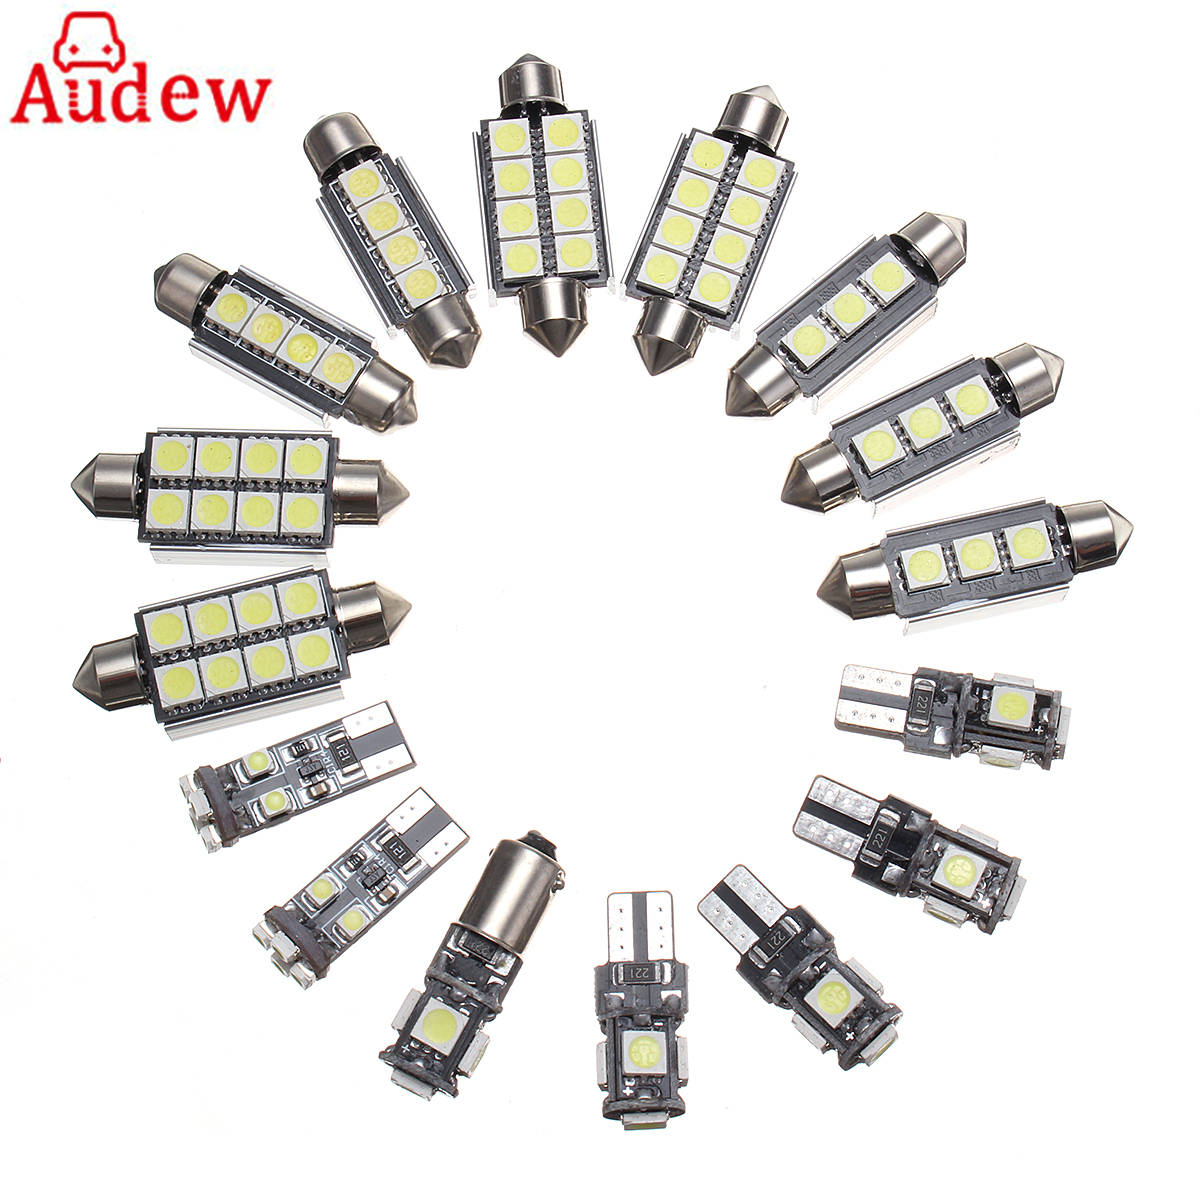 20pcs white canbus Car Interior lamp LED Light Kit for Audi A4 S4 B8 avant 2009-2015 цена